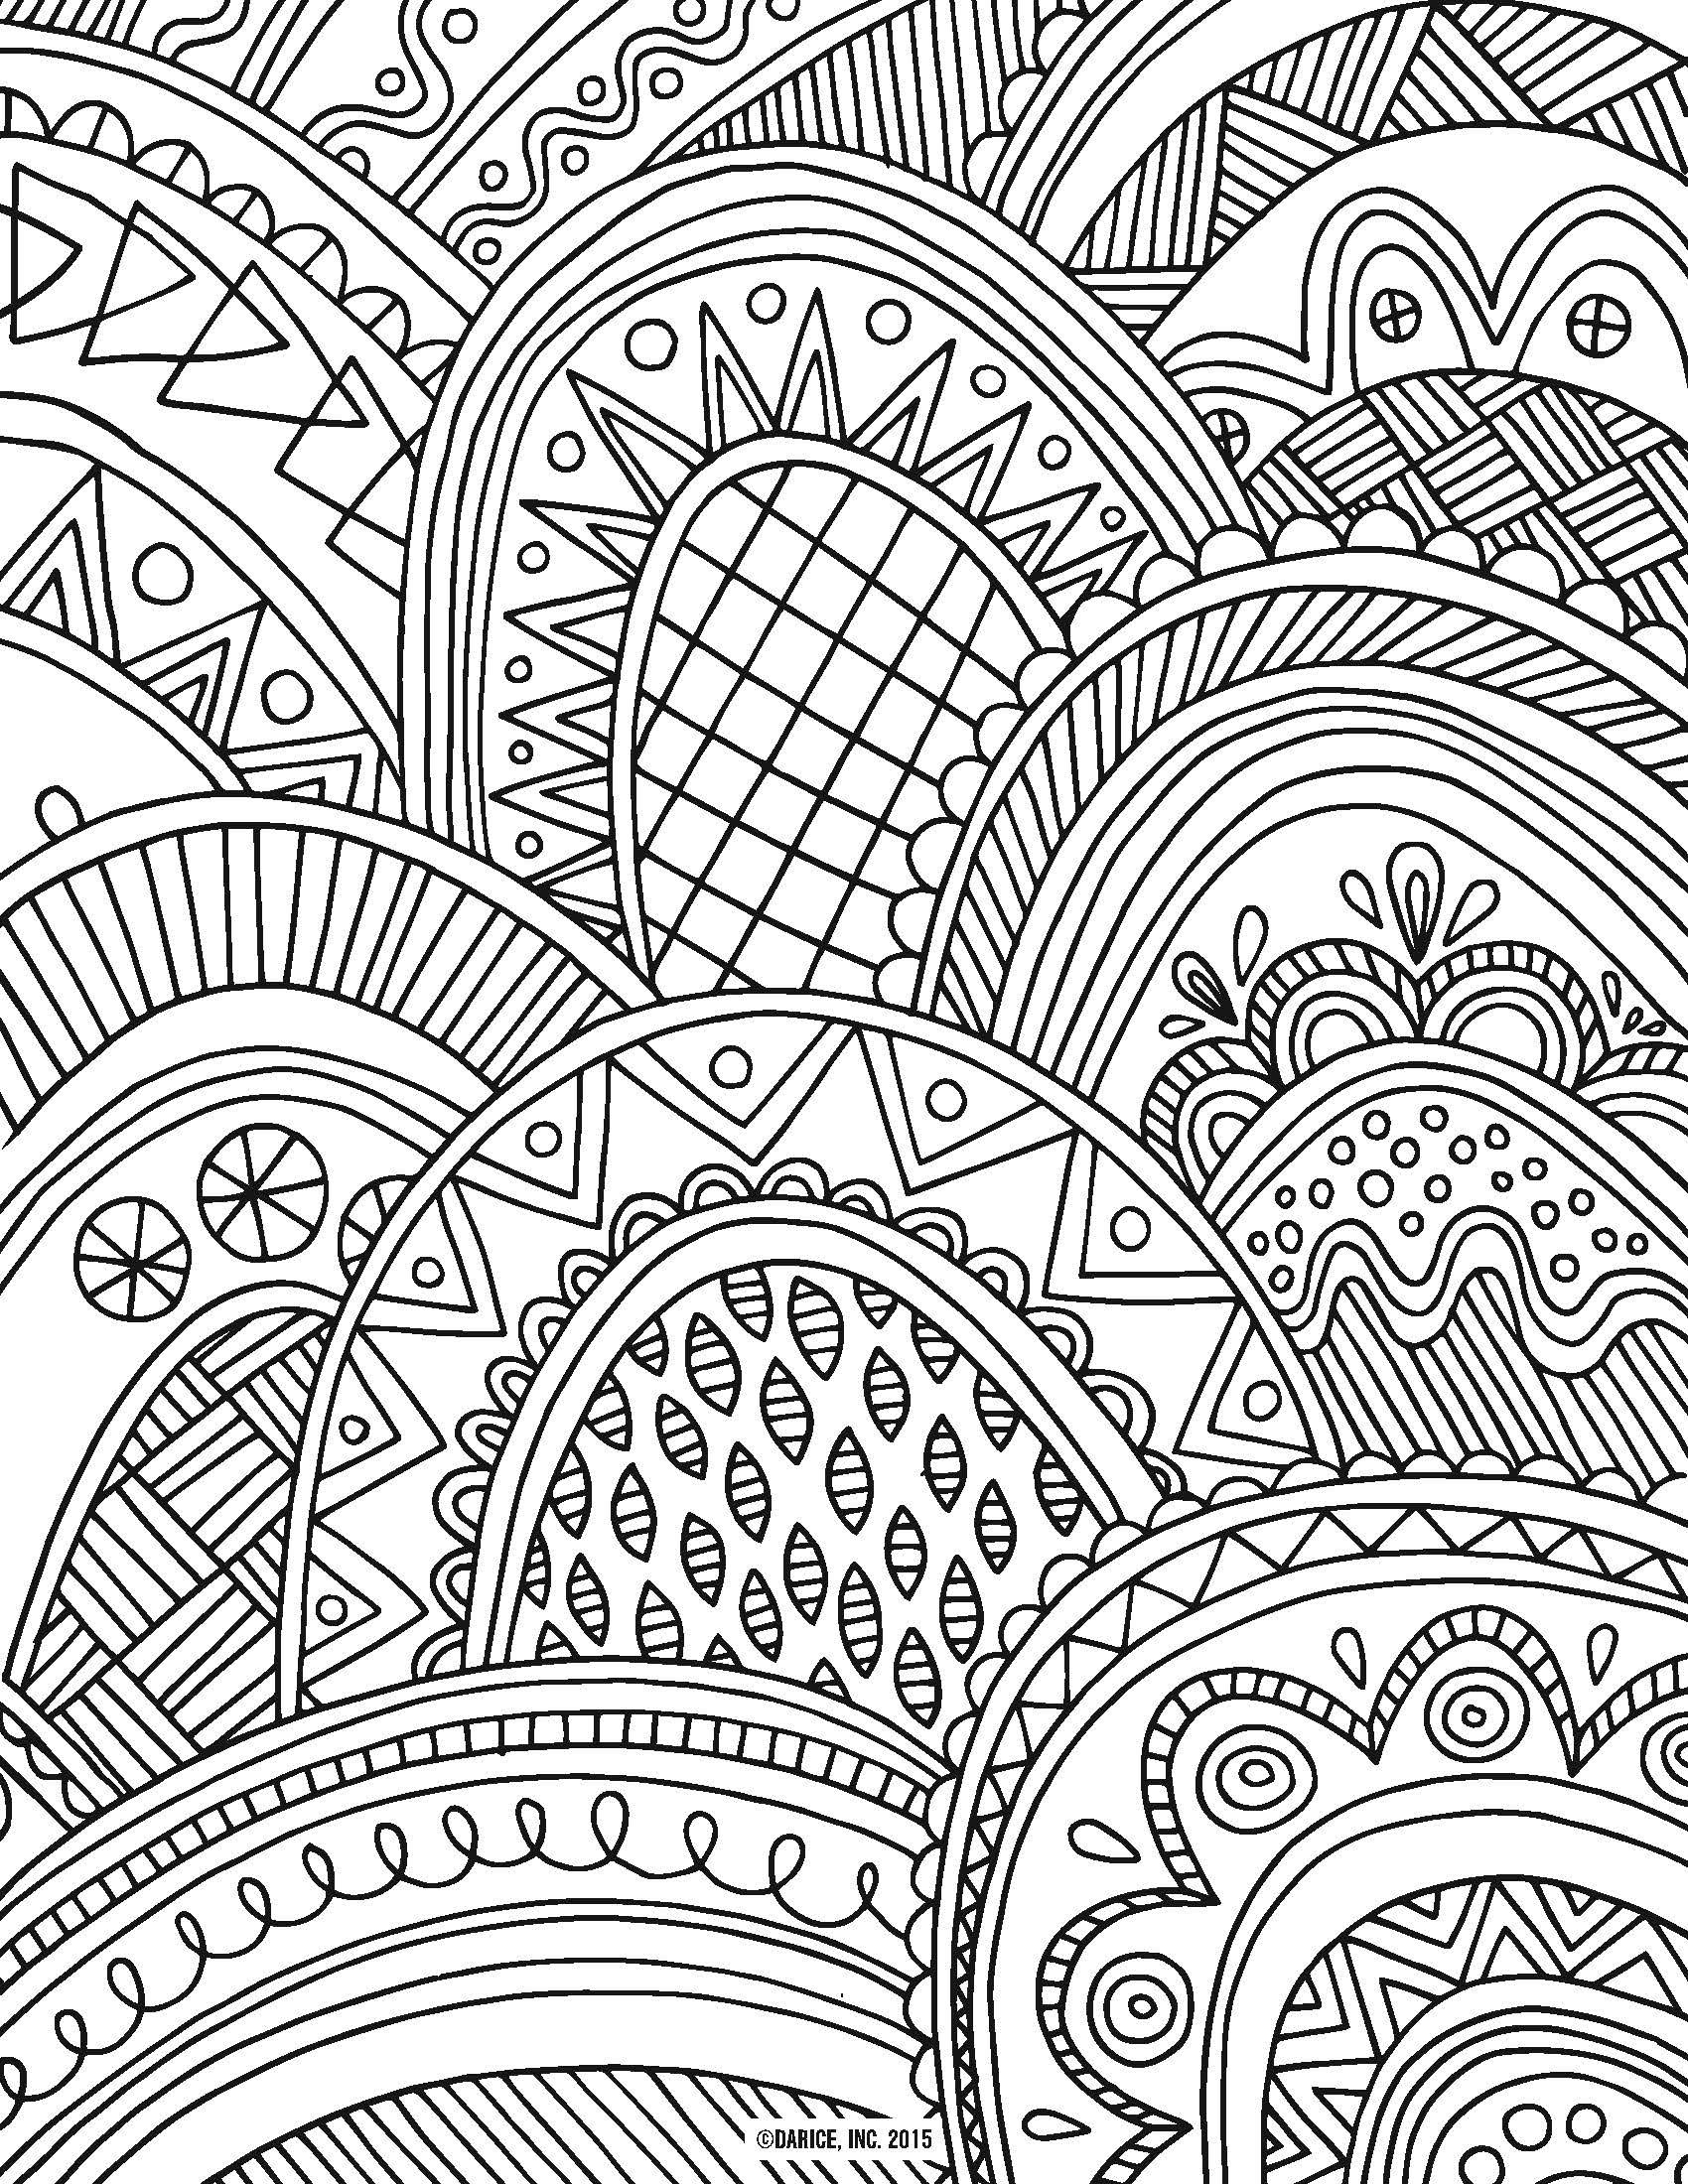 Try Out The Adult Coloring Book Trend For Yourself With